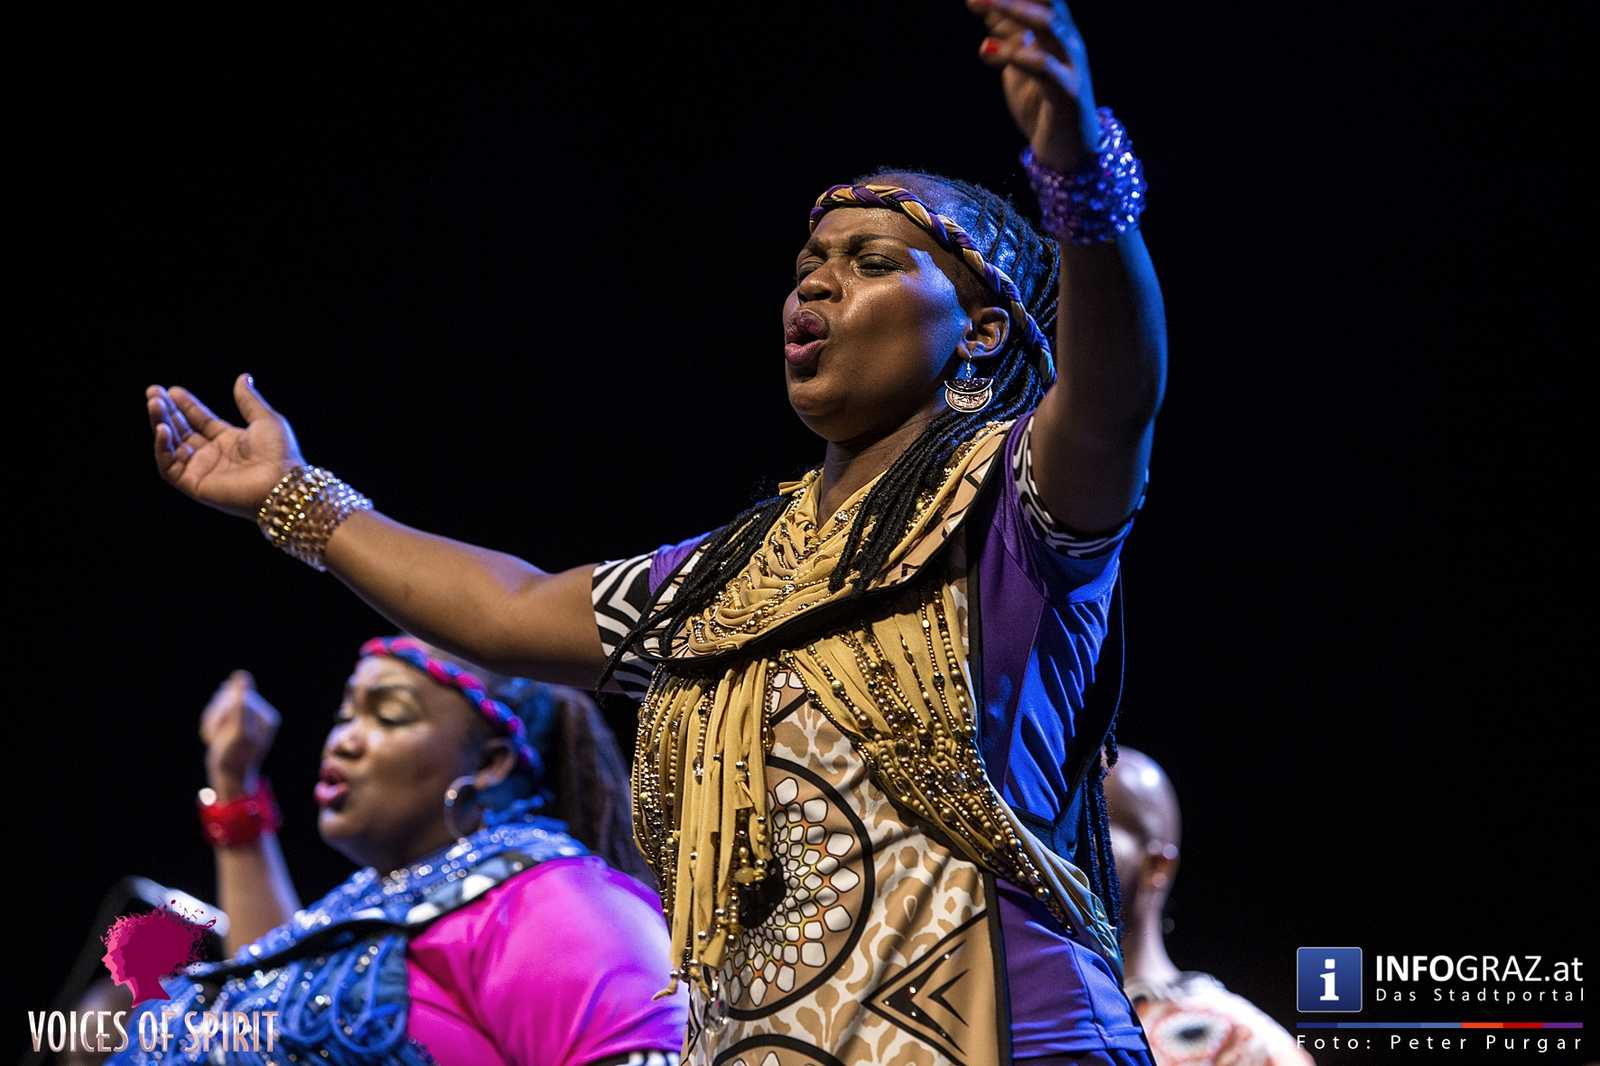 soweto gospel choir internationales chorfestival statdthalle graz voices of spirit eroeffnung festivals 2016 140